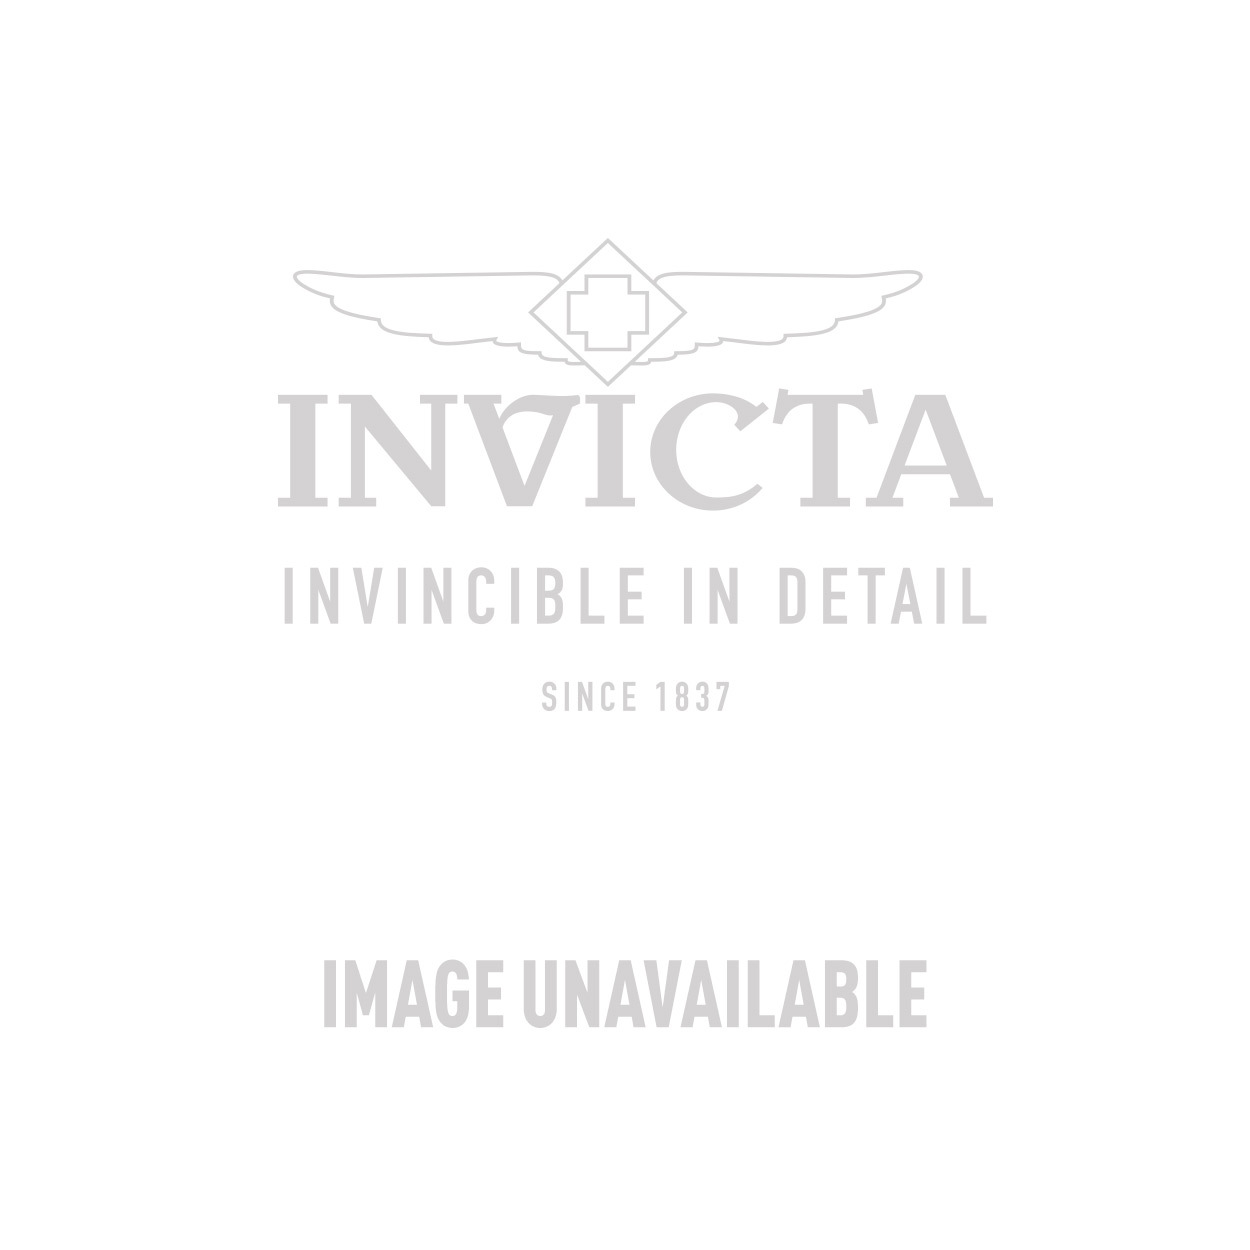 Invicta Angel Swiss Movement Quartz Watch - Stainless Steel case with White tone Polyurethane band - Model 0486